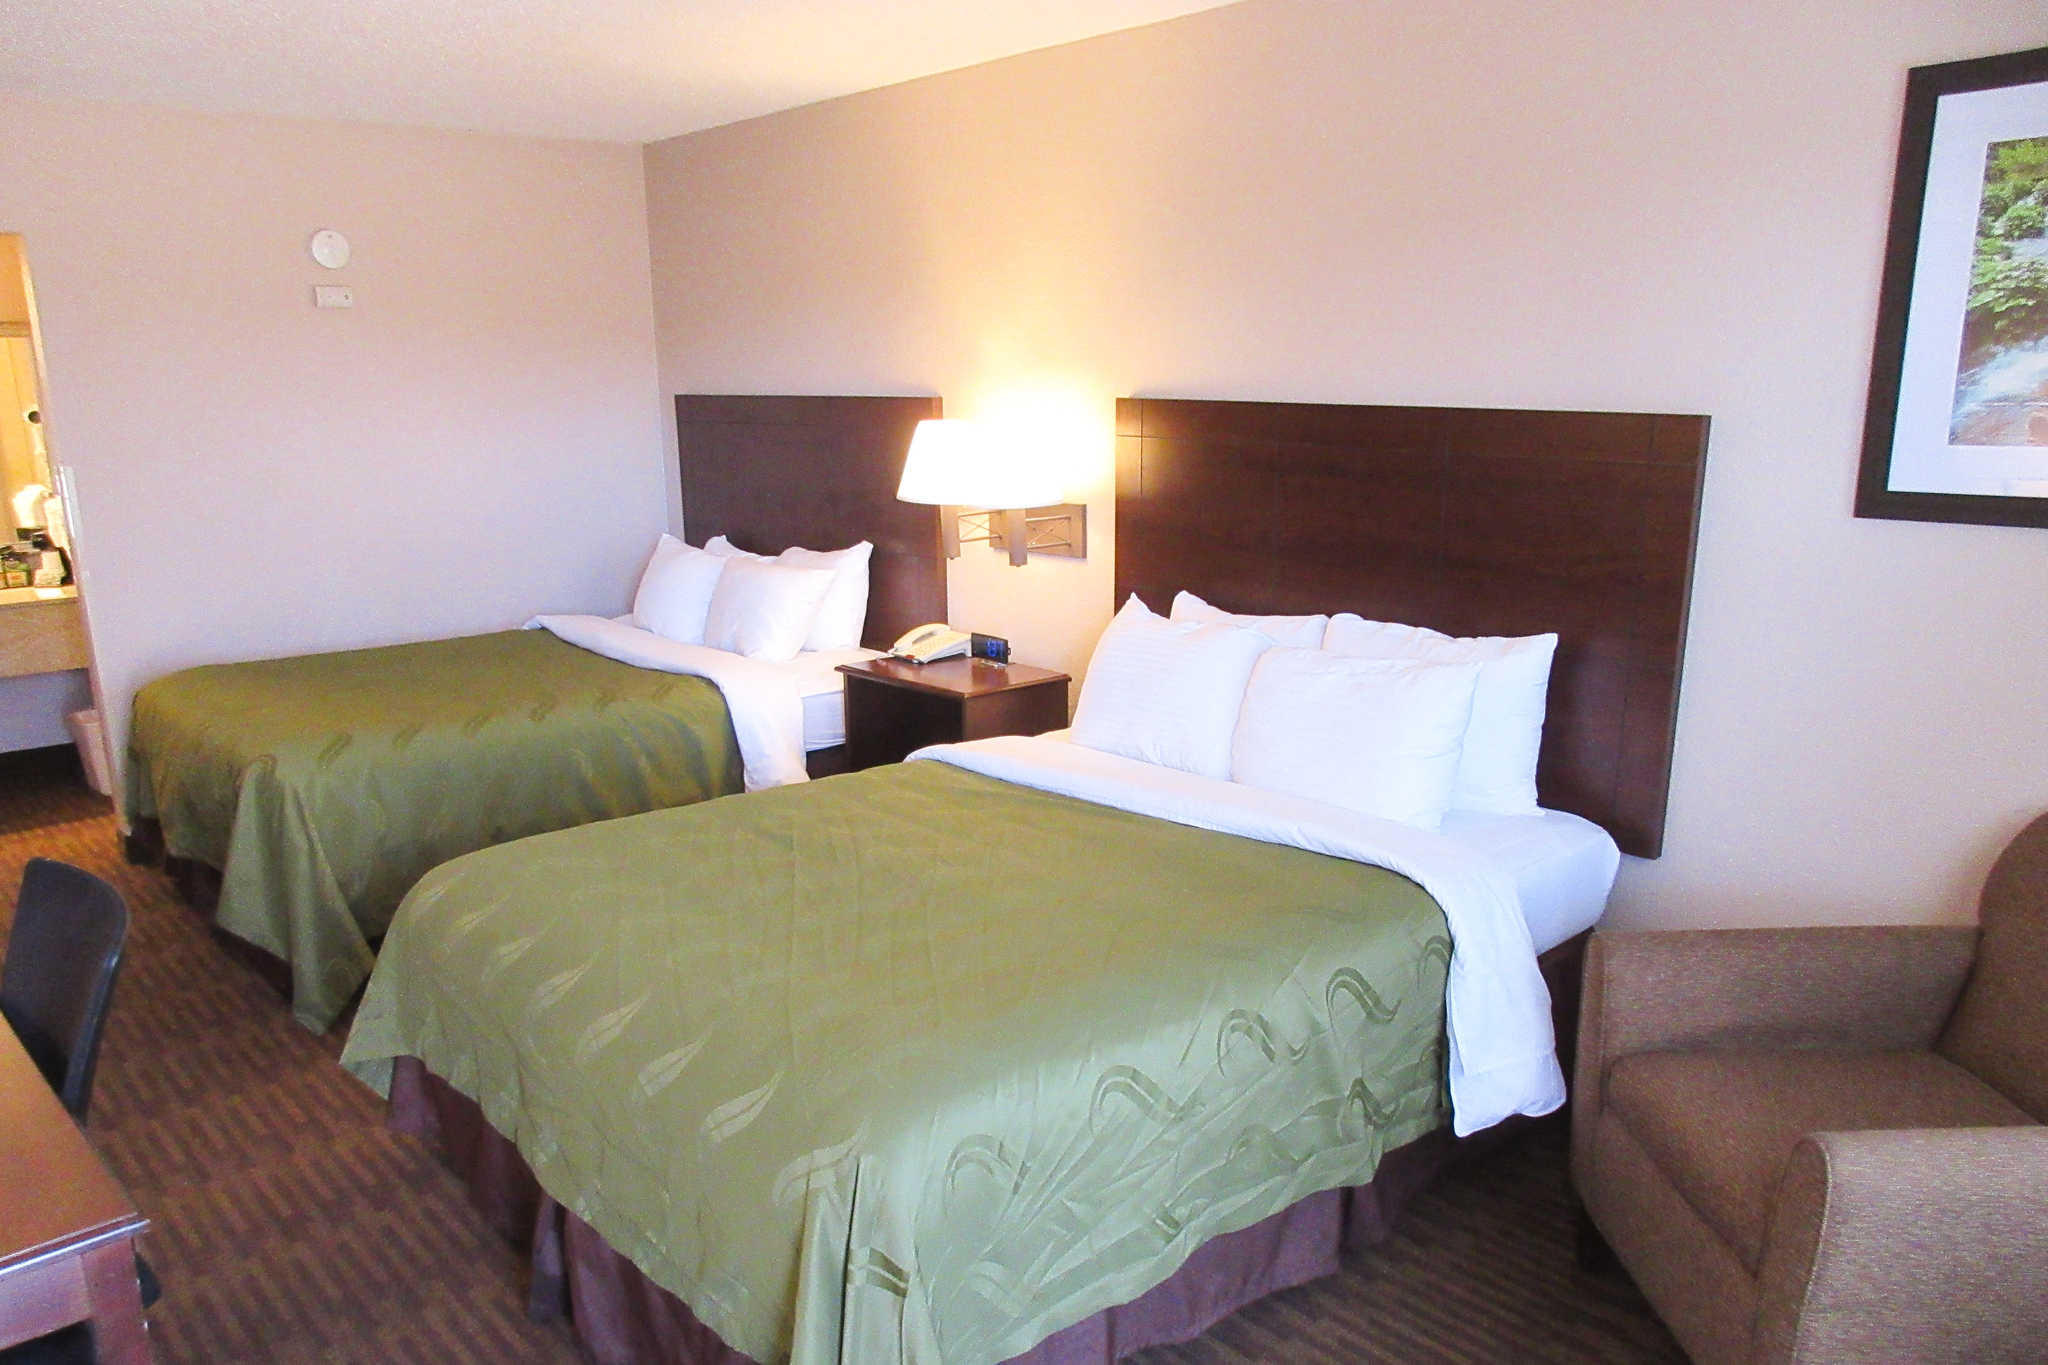 Quality Inn & Suites Lawrence - University Area image 14